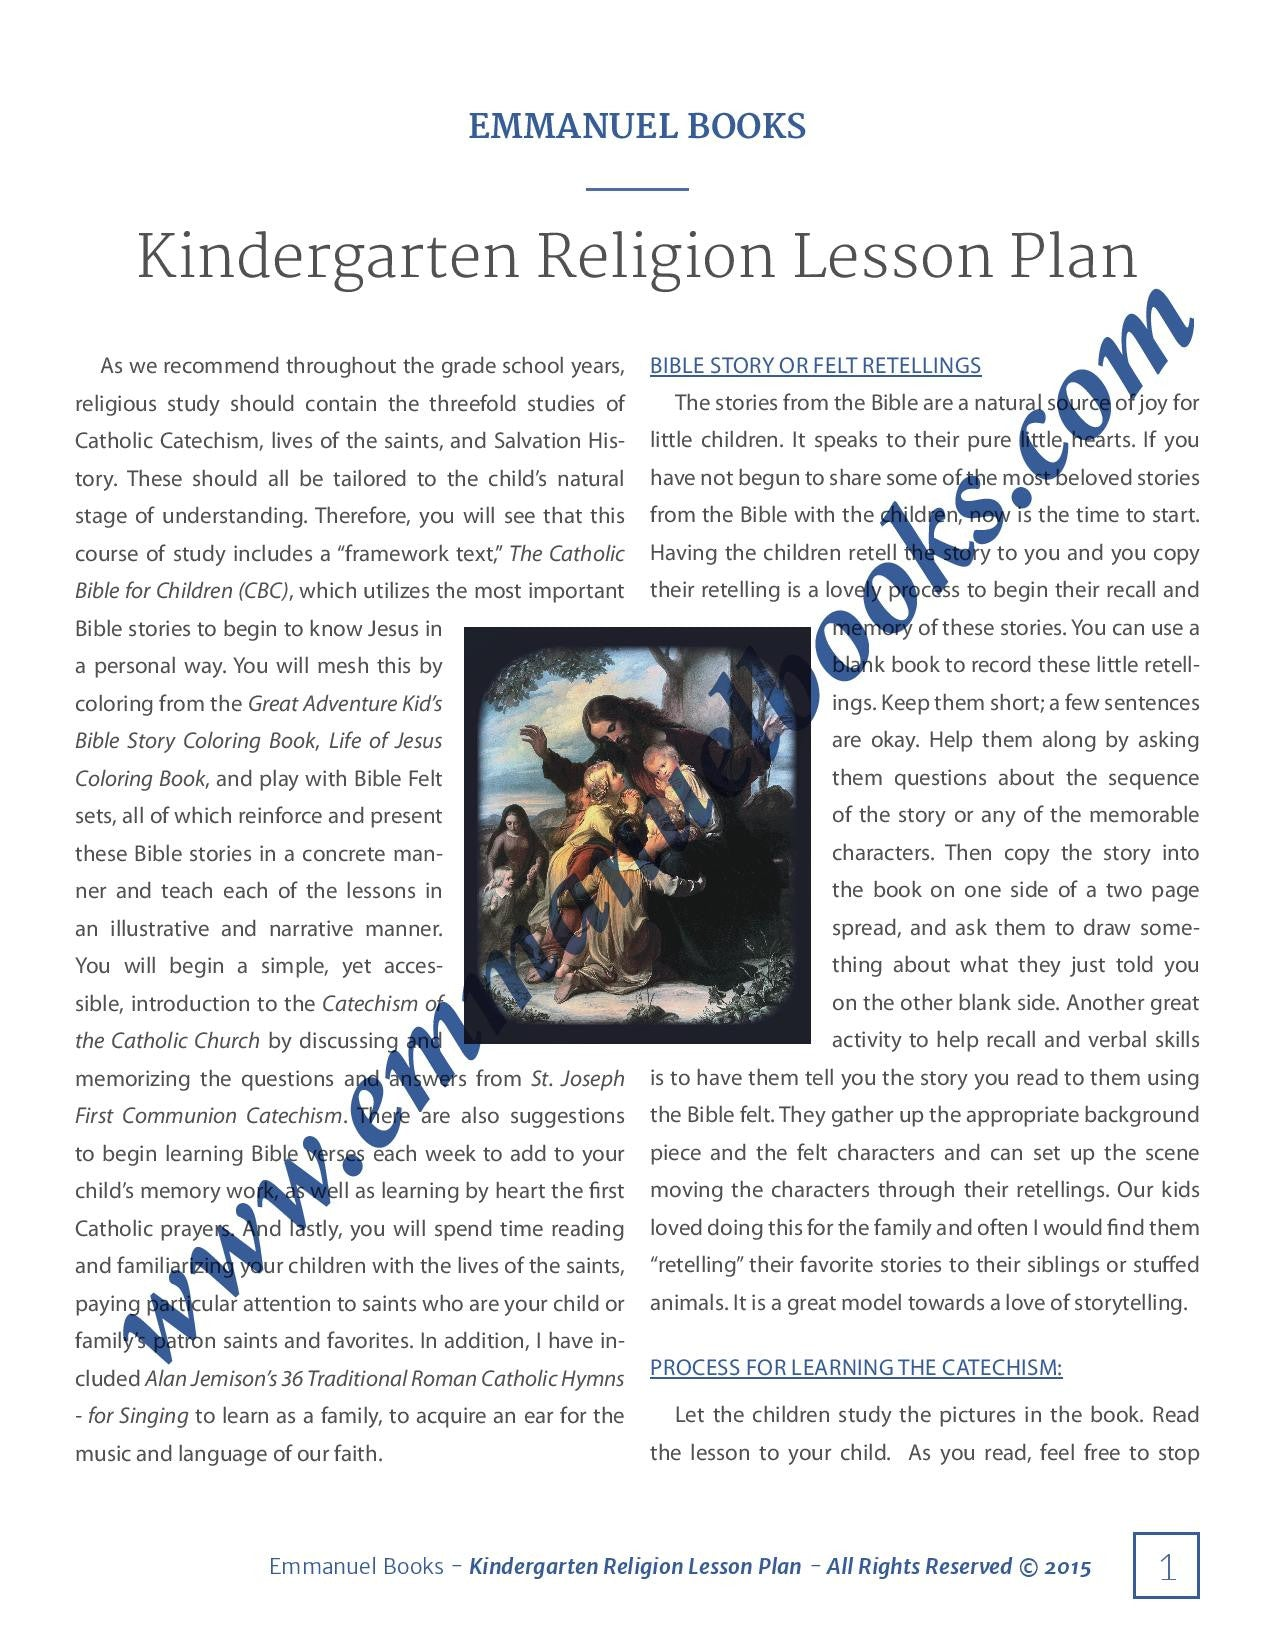 Emmanuel Books Kindergarten Religion Lesson Plan